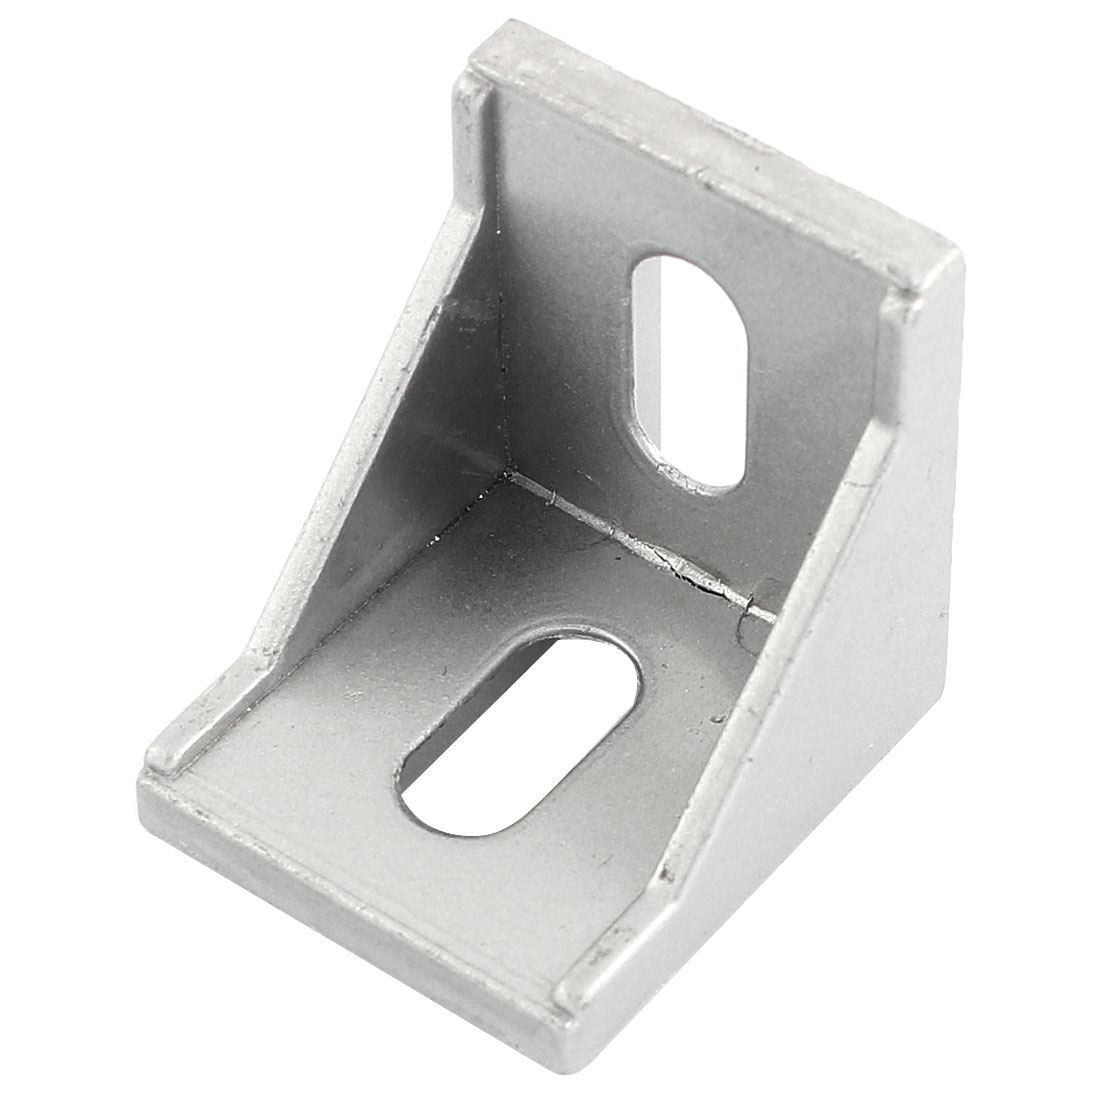 Silver Tone 40mmx40mm 2 Holes Right Angled Shelf Corner Brace Angle Bracket